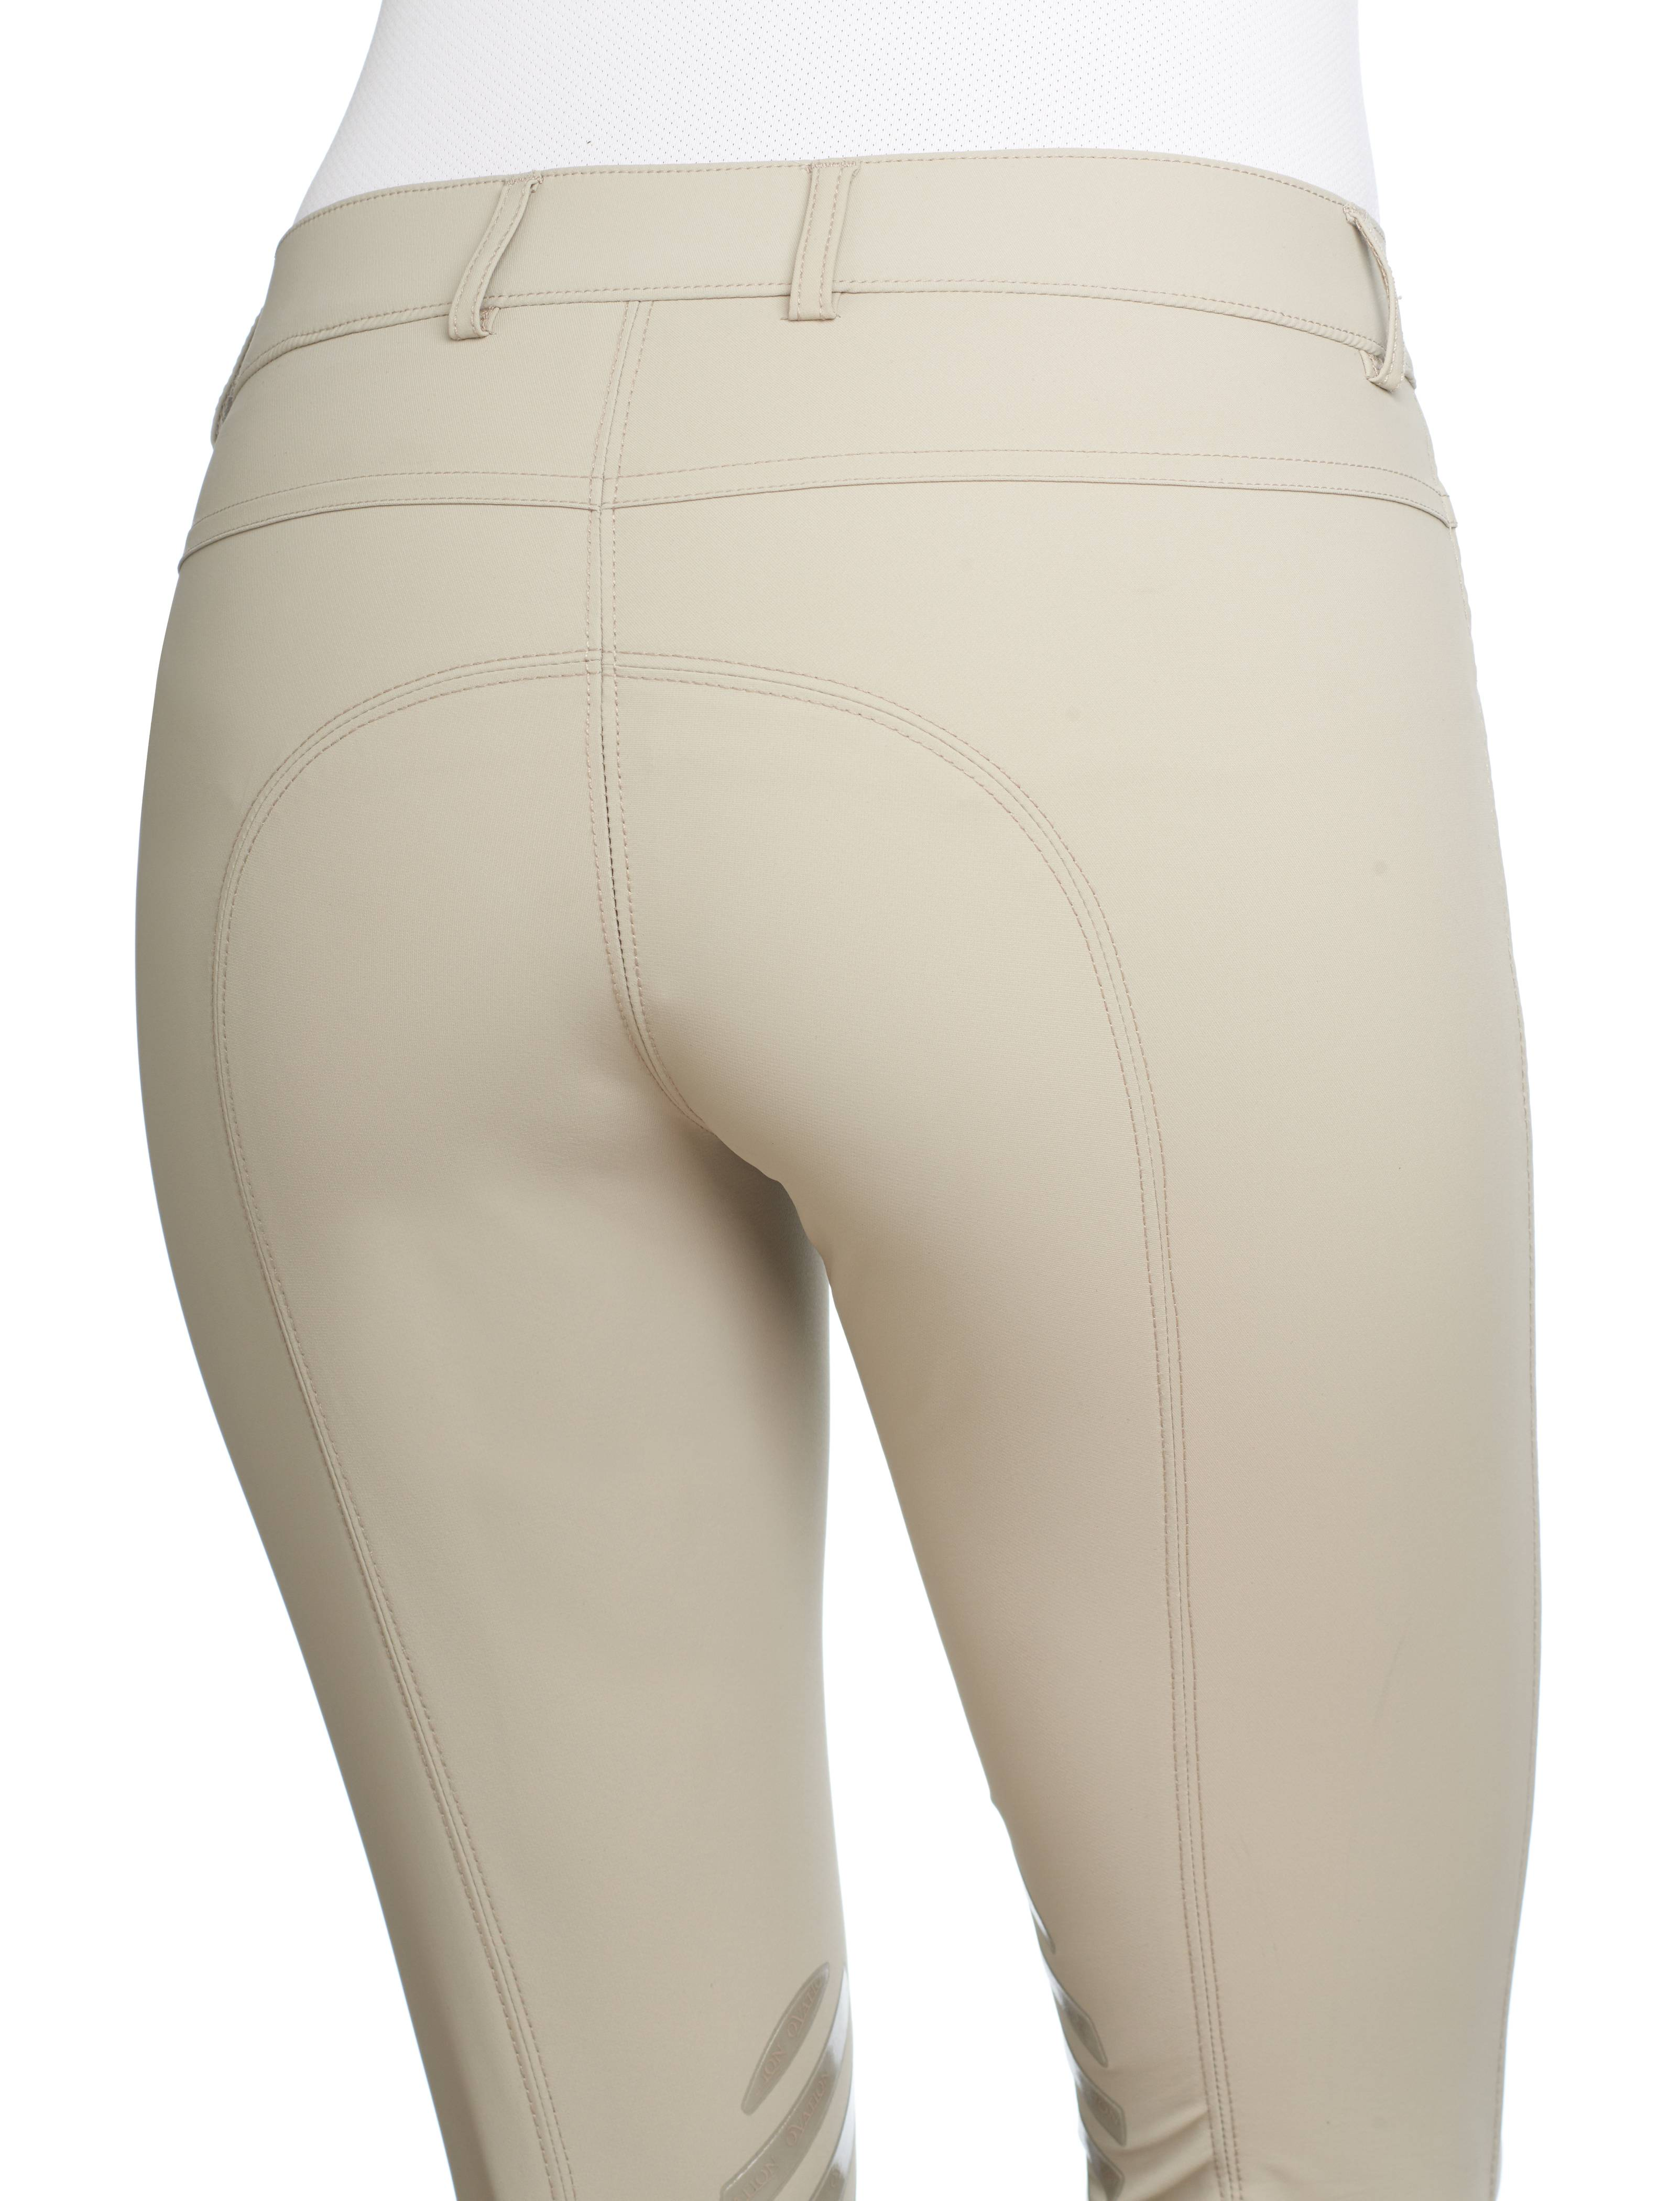 Ovation Ladies Aqua-X Slim Secret Knee Patch Breeches